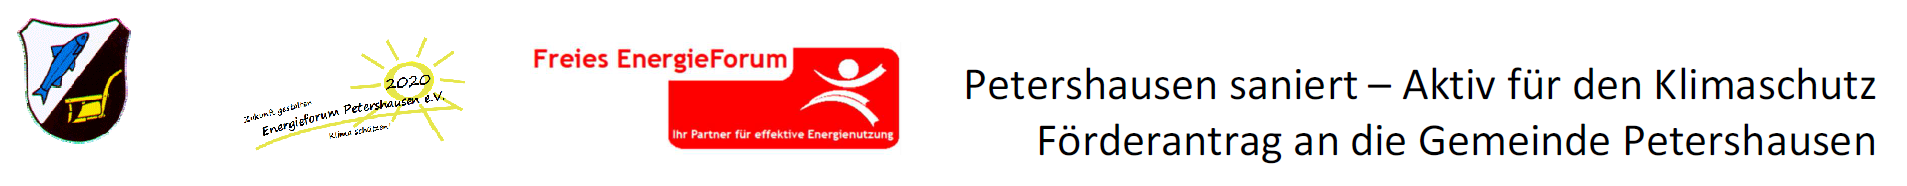 logo_petershausen_saniert